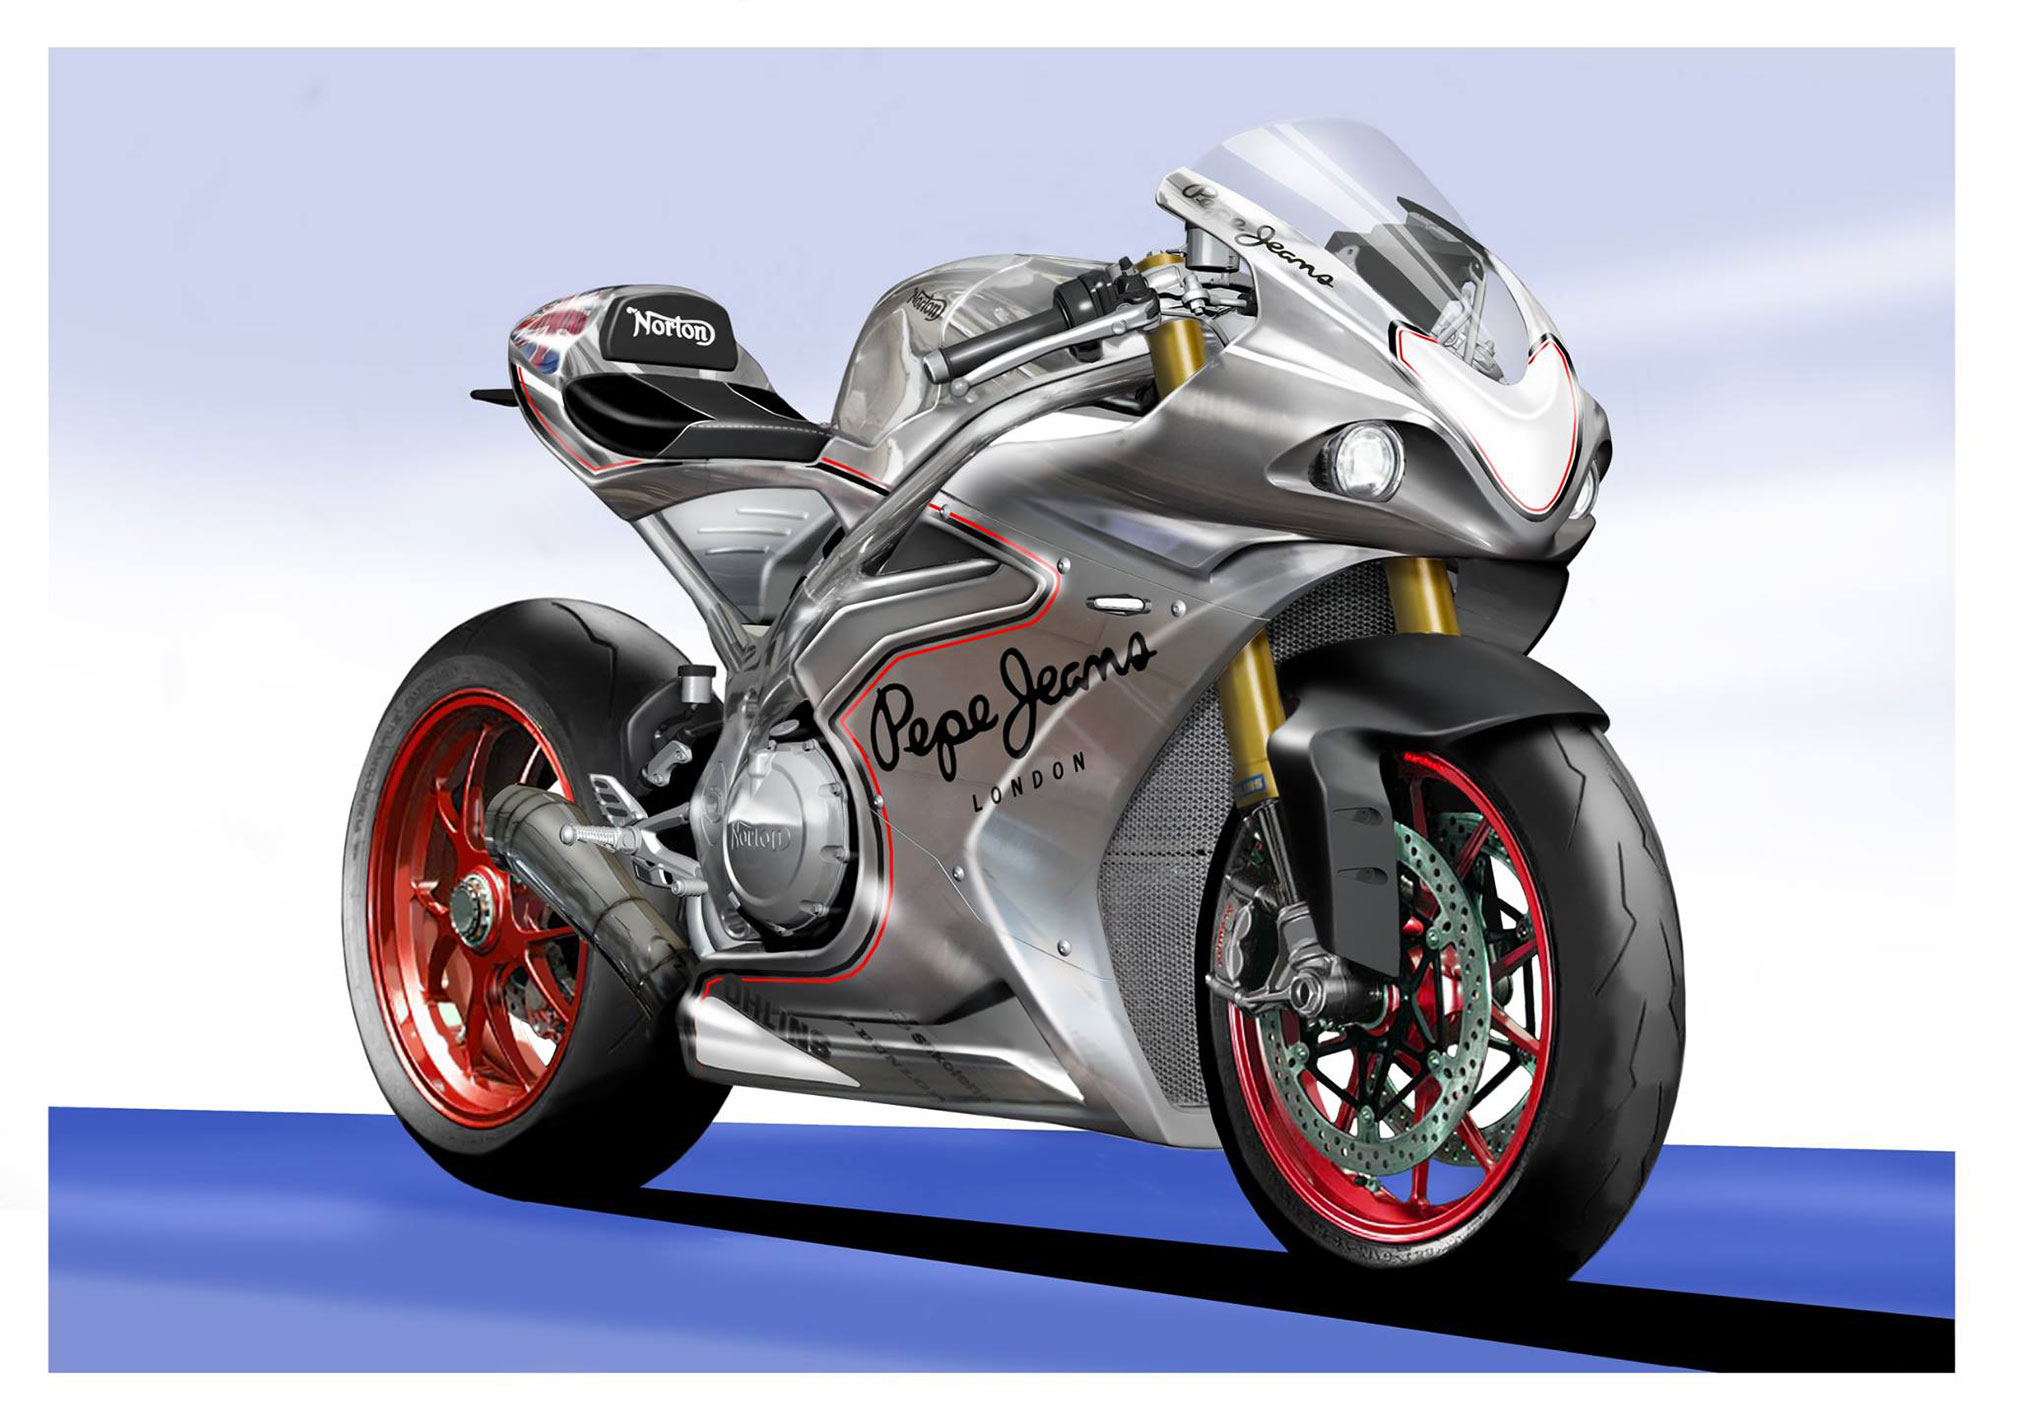 2017 norton motorcycle models at total motorcycle for The norton